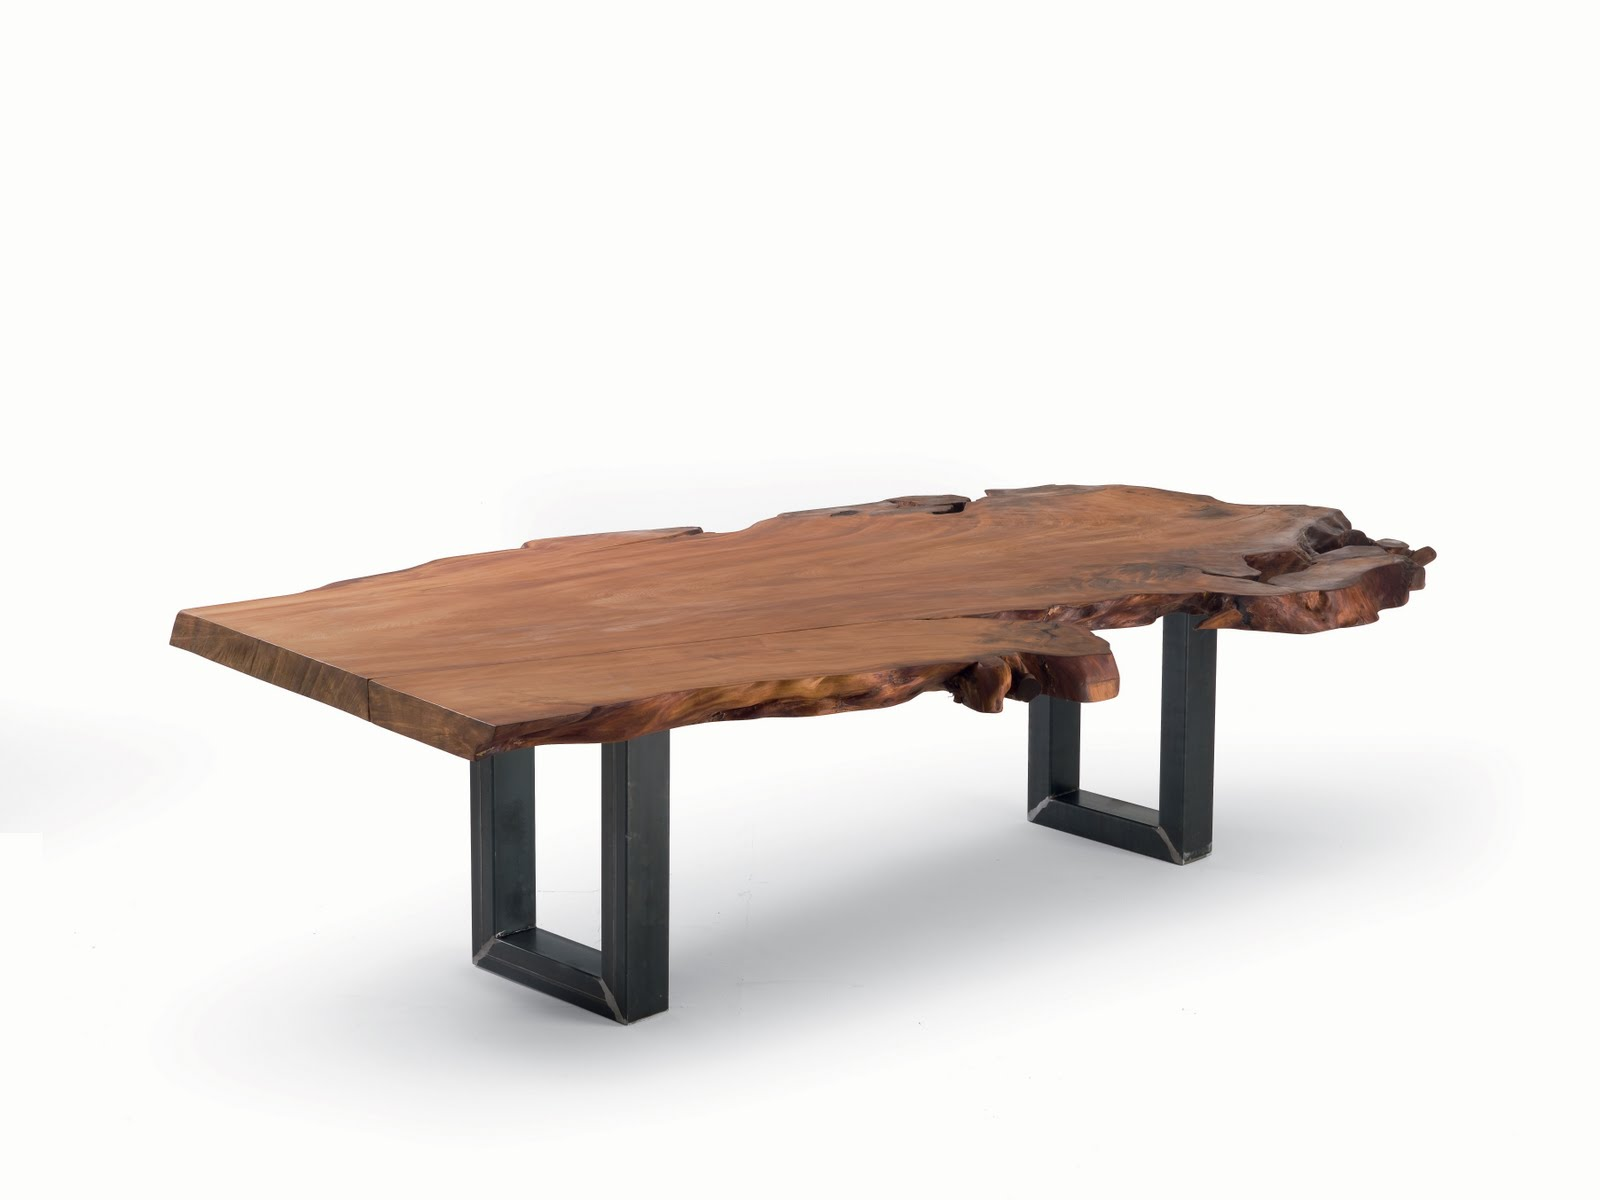 Tables by riva 1920 tables de riva 1920 design scene - Table originale en bois ...